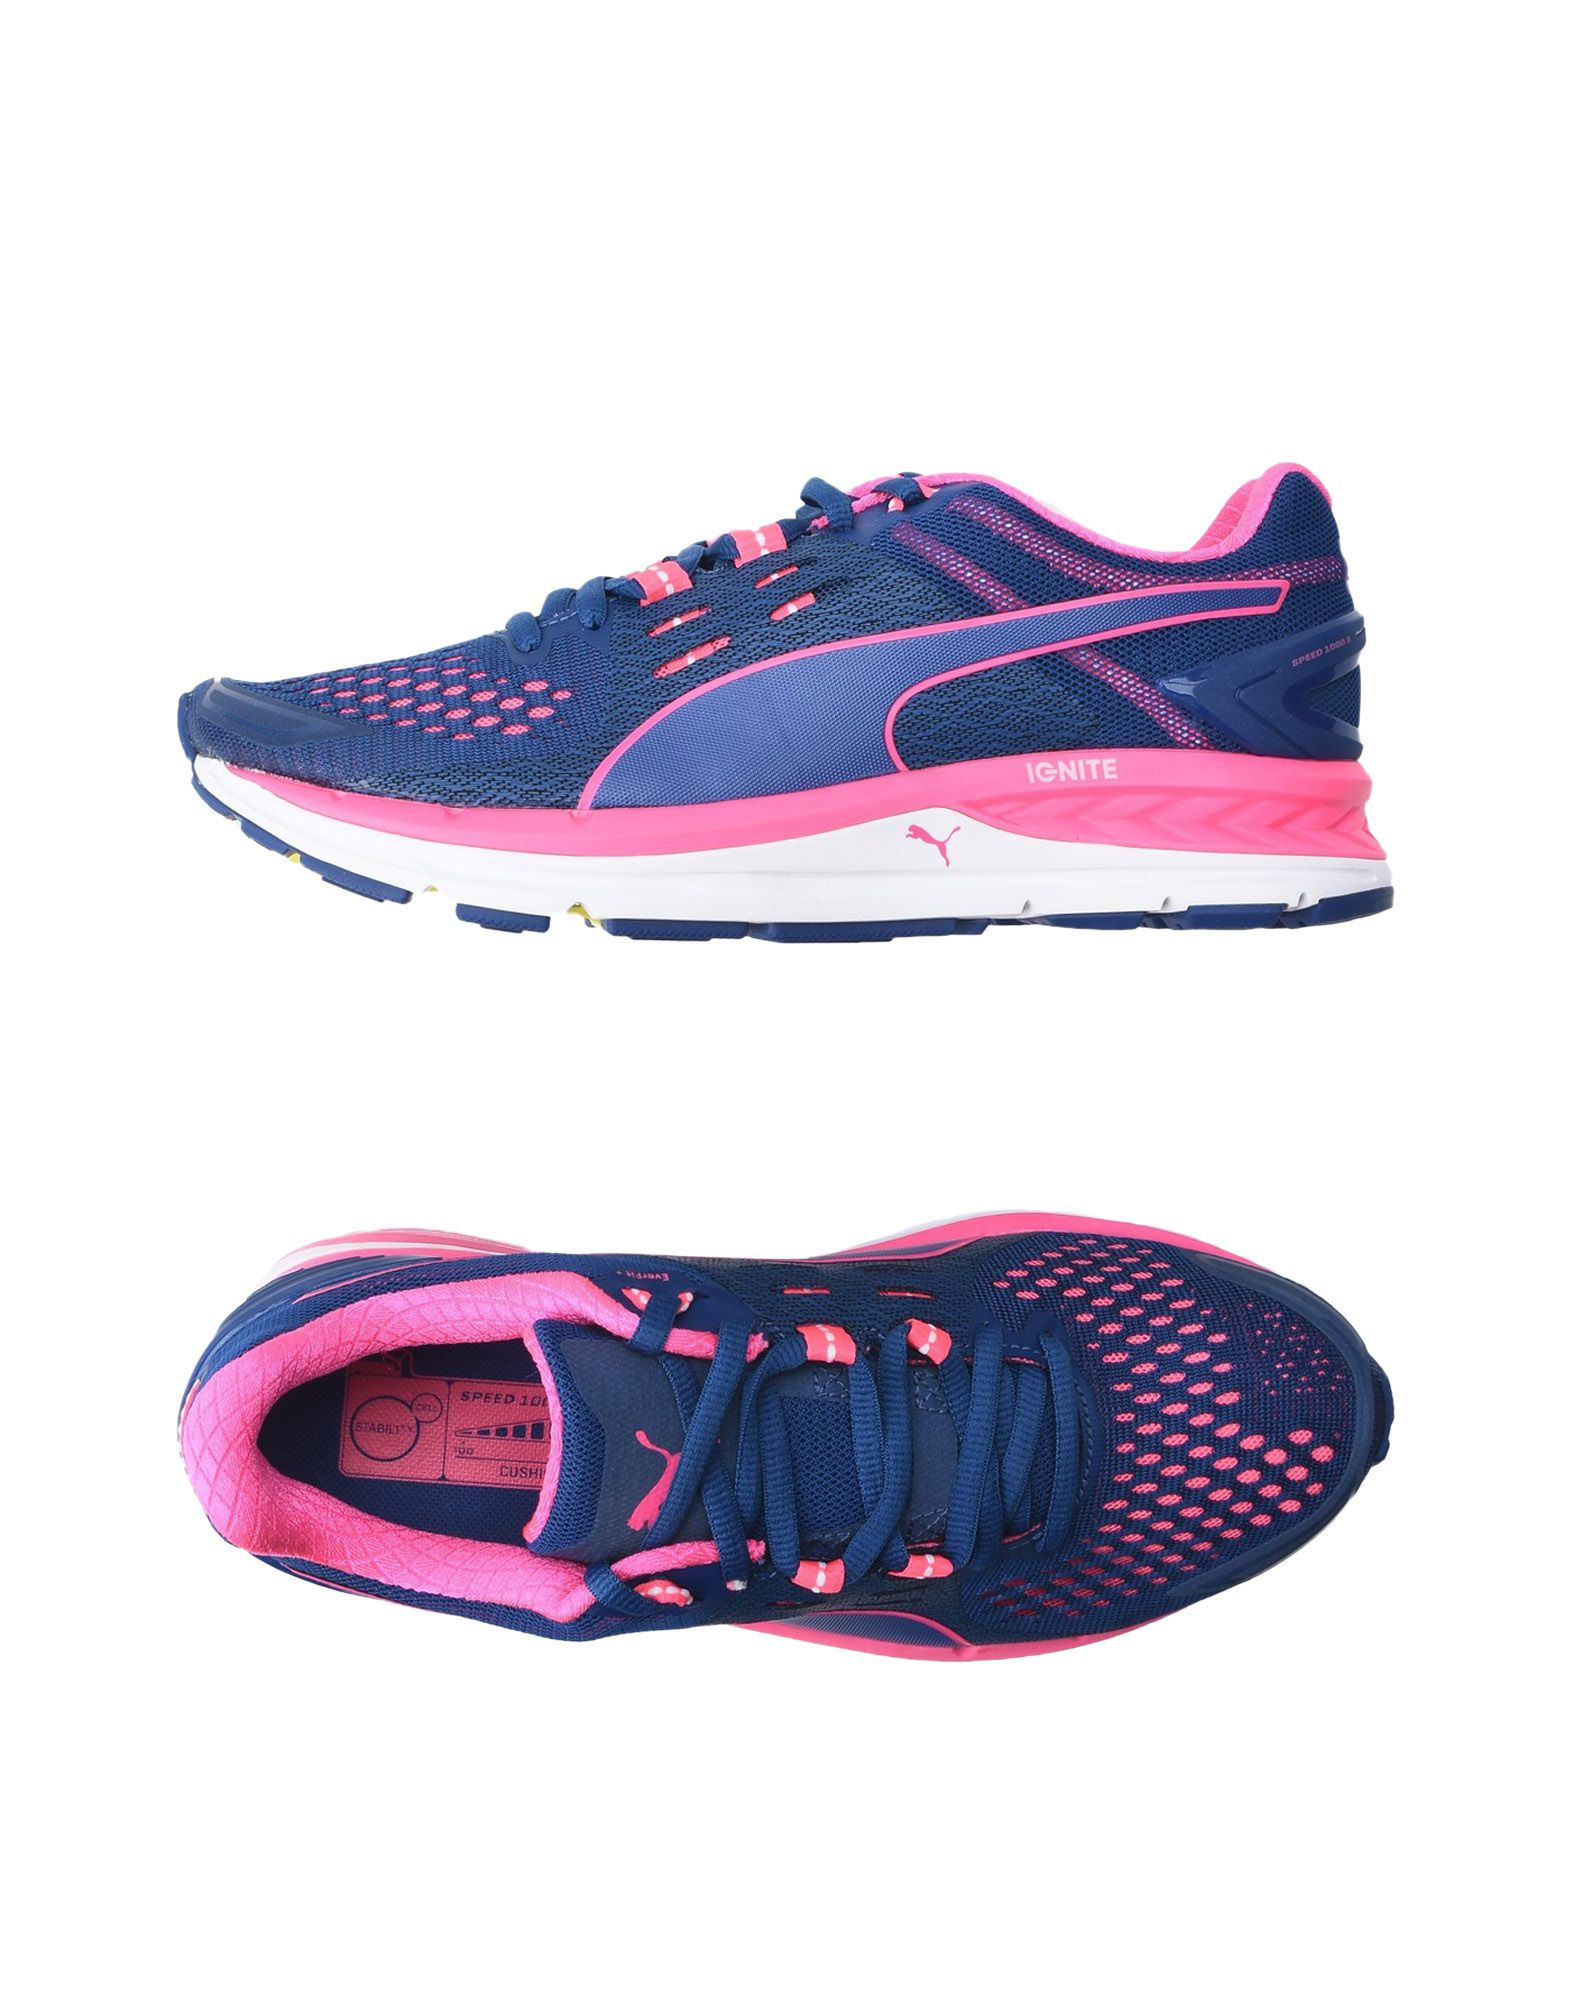 Puma Speed 1000 1000 1000 S Ignite Wn - Sneakers - Women Puma Sneakers online on  Canada - 11248319LT 99f69a